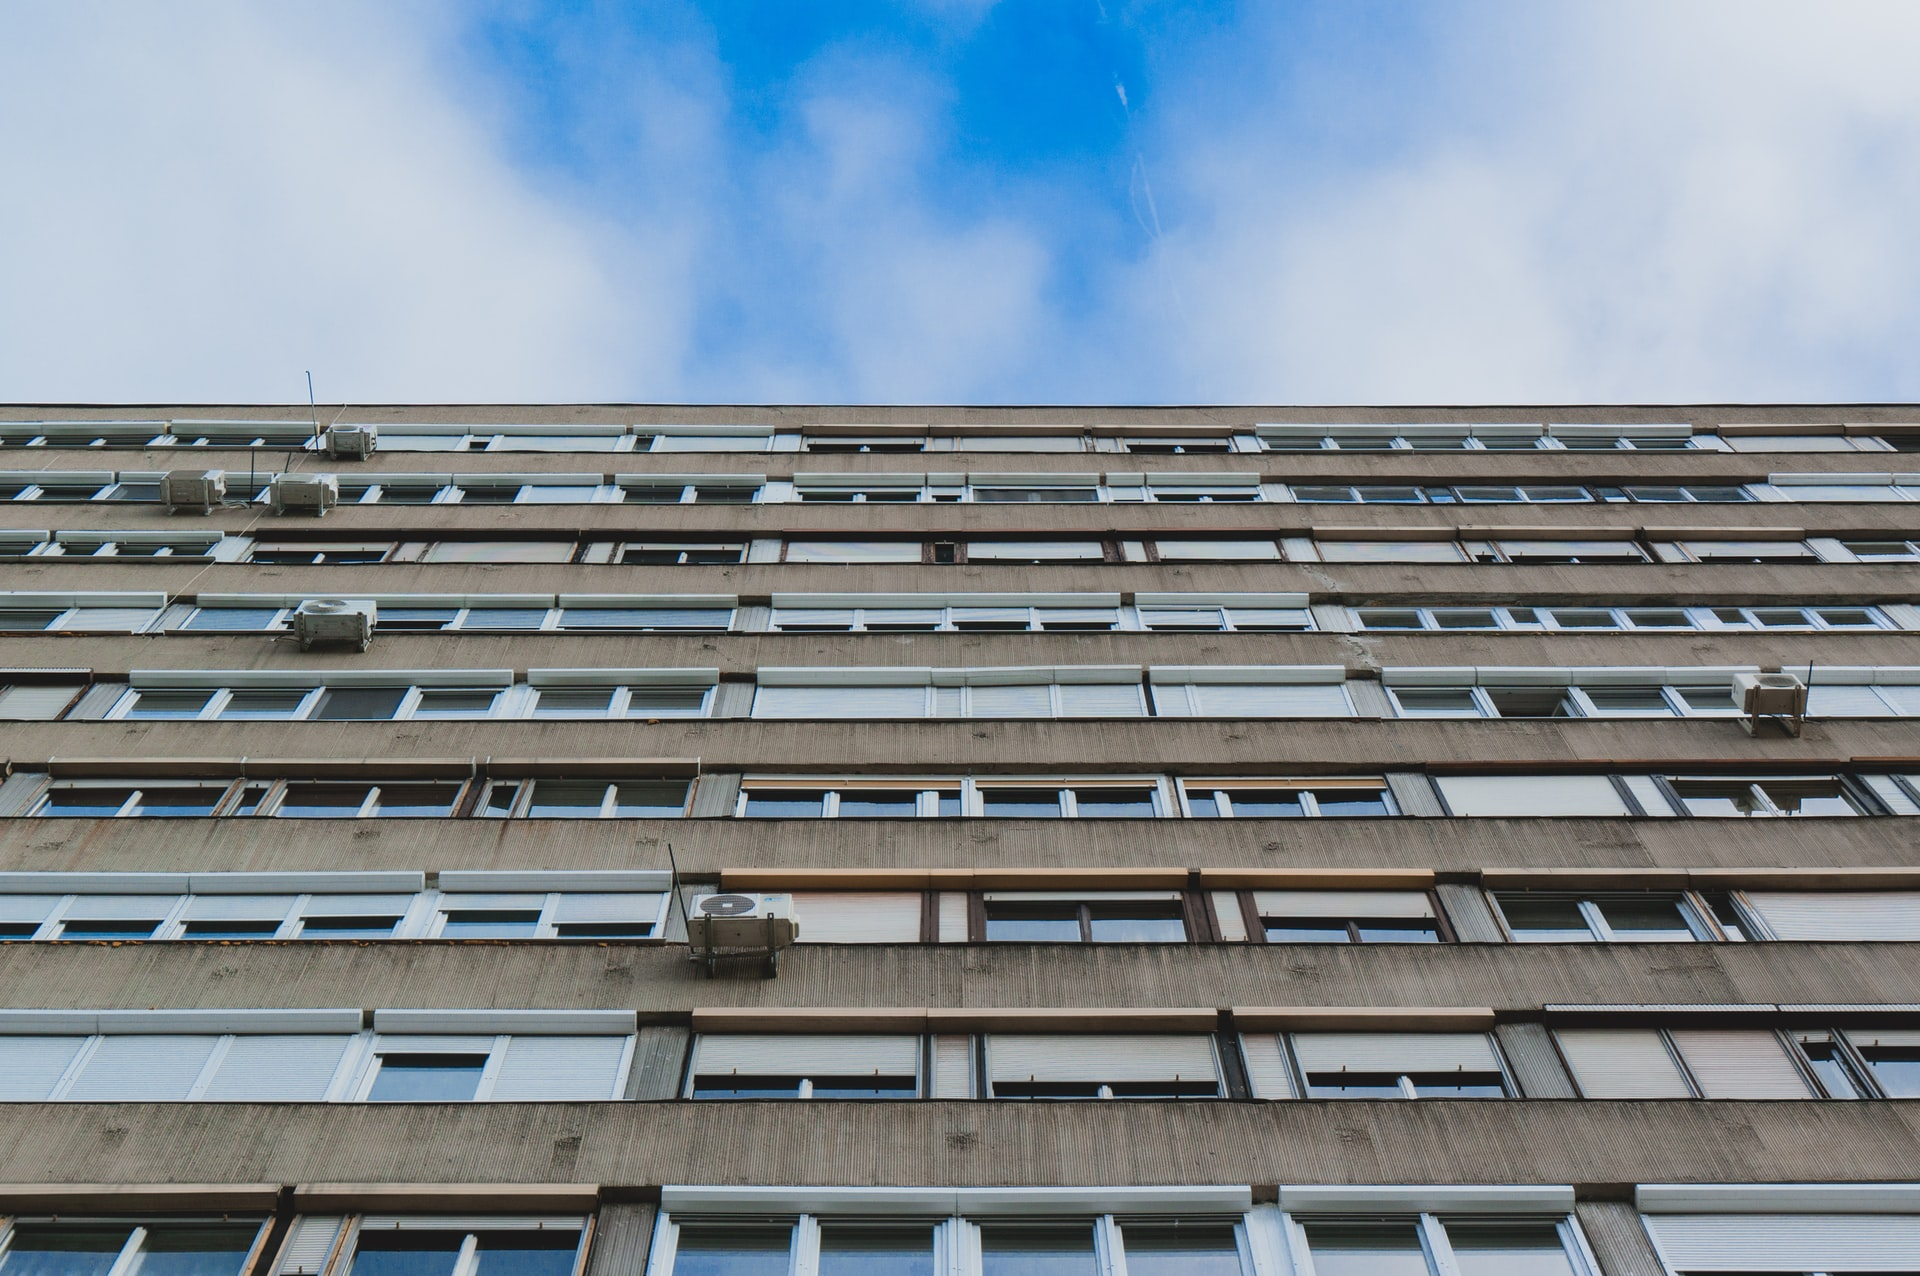 Social Housing in the COVID Era: A Local Perspective on a Worsening Challenge